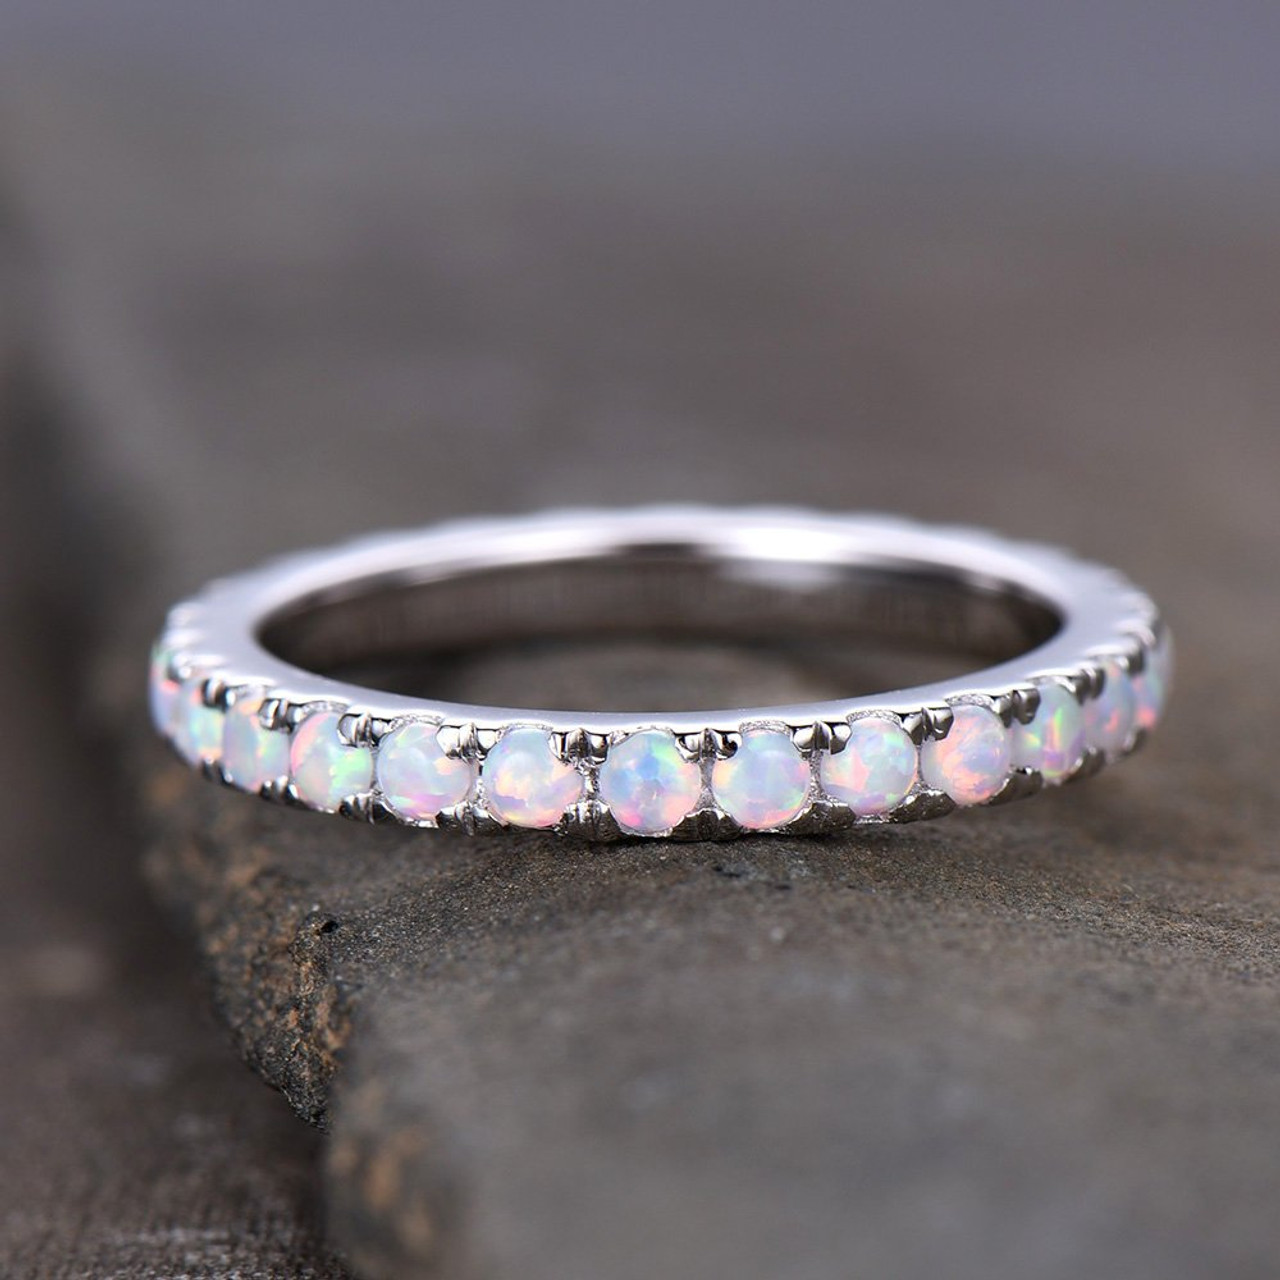 Opal Wedding Band.Opal Ring Opal Wedding Band Eternity Band Stacking Ring Matching Band Promise Ring Anniversary Gift For Women White Gold Plated